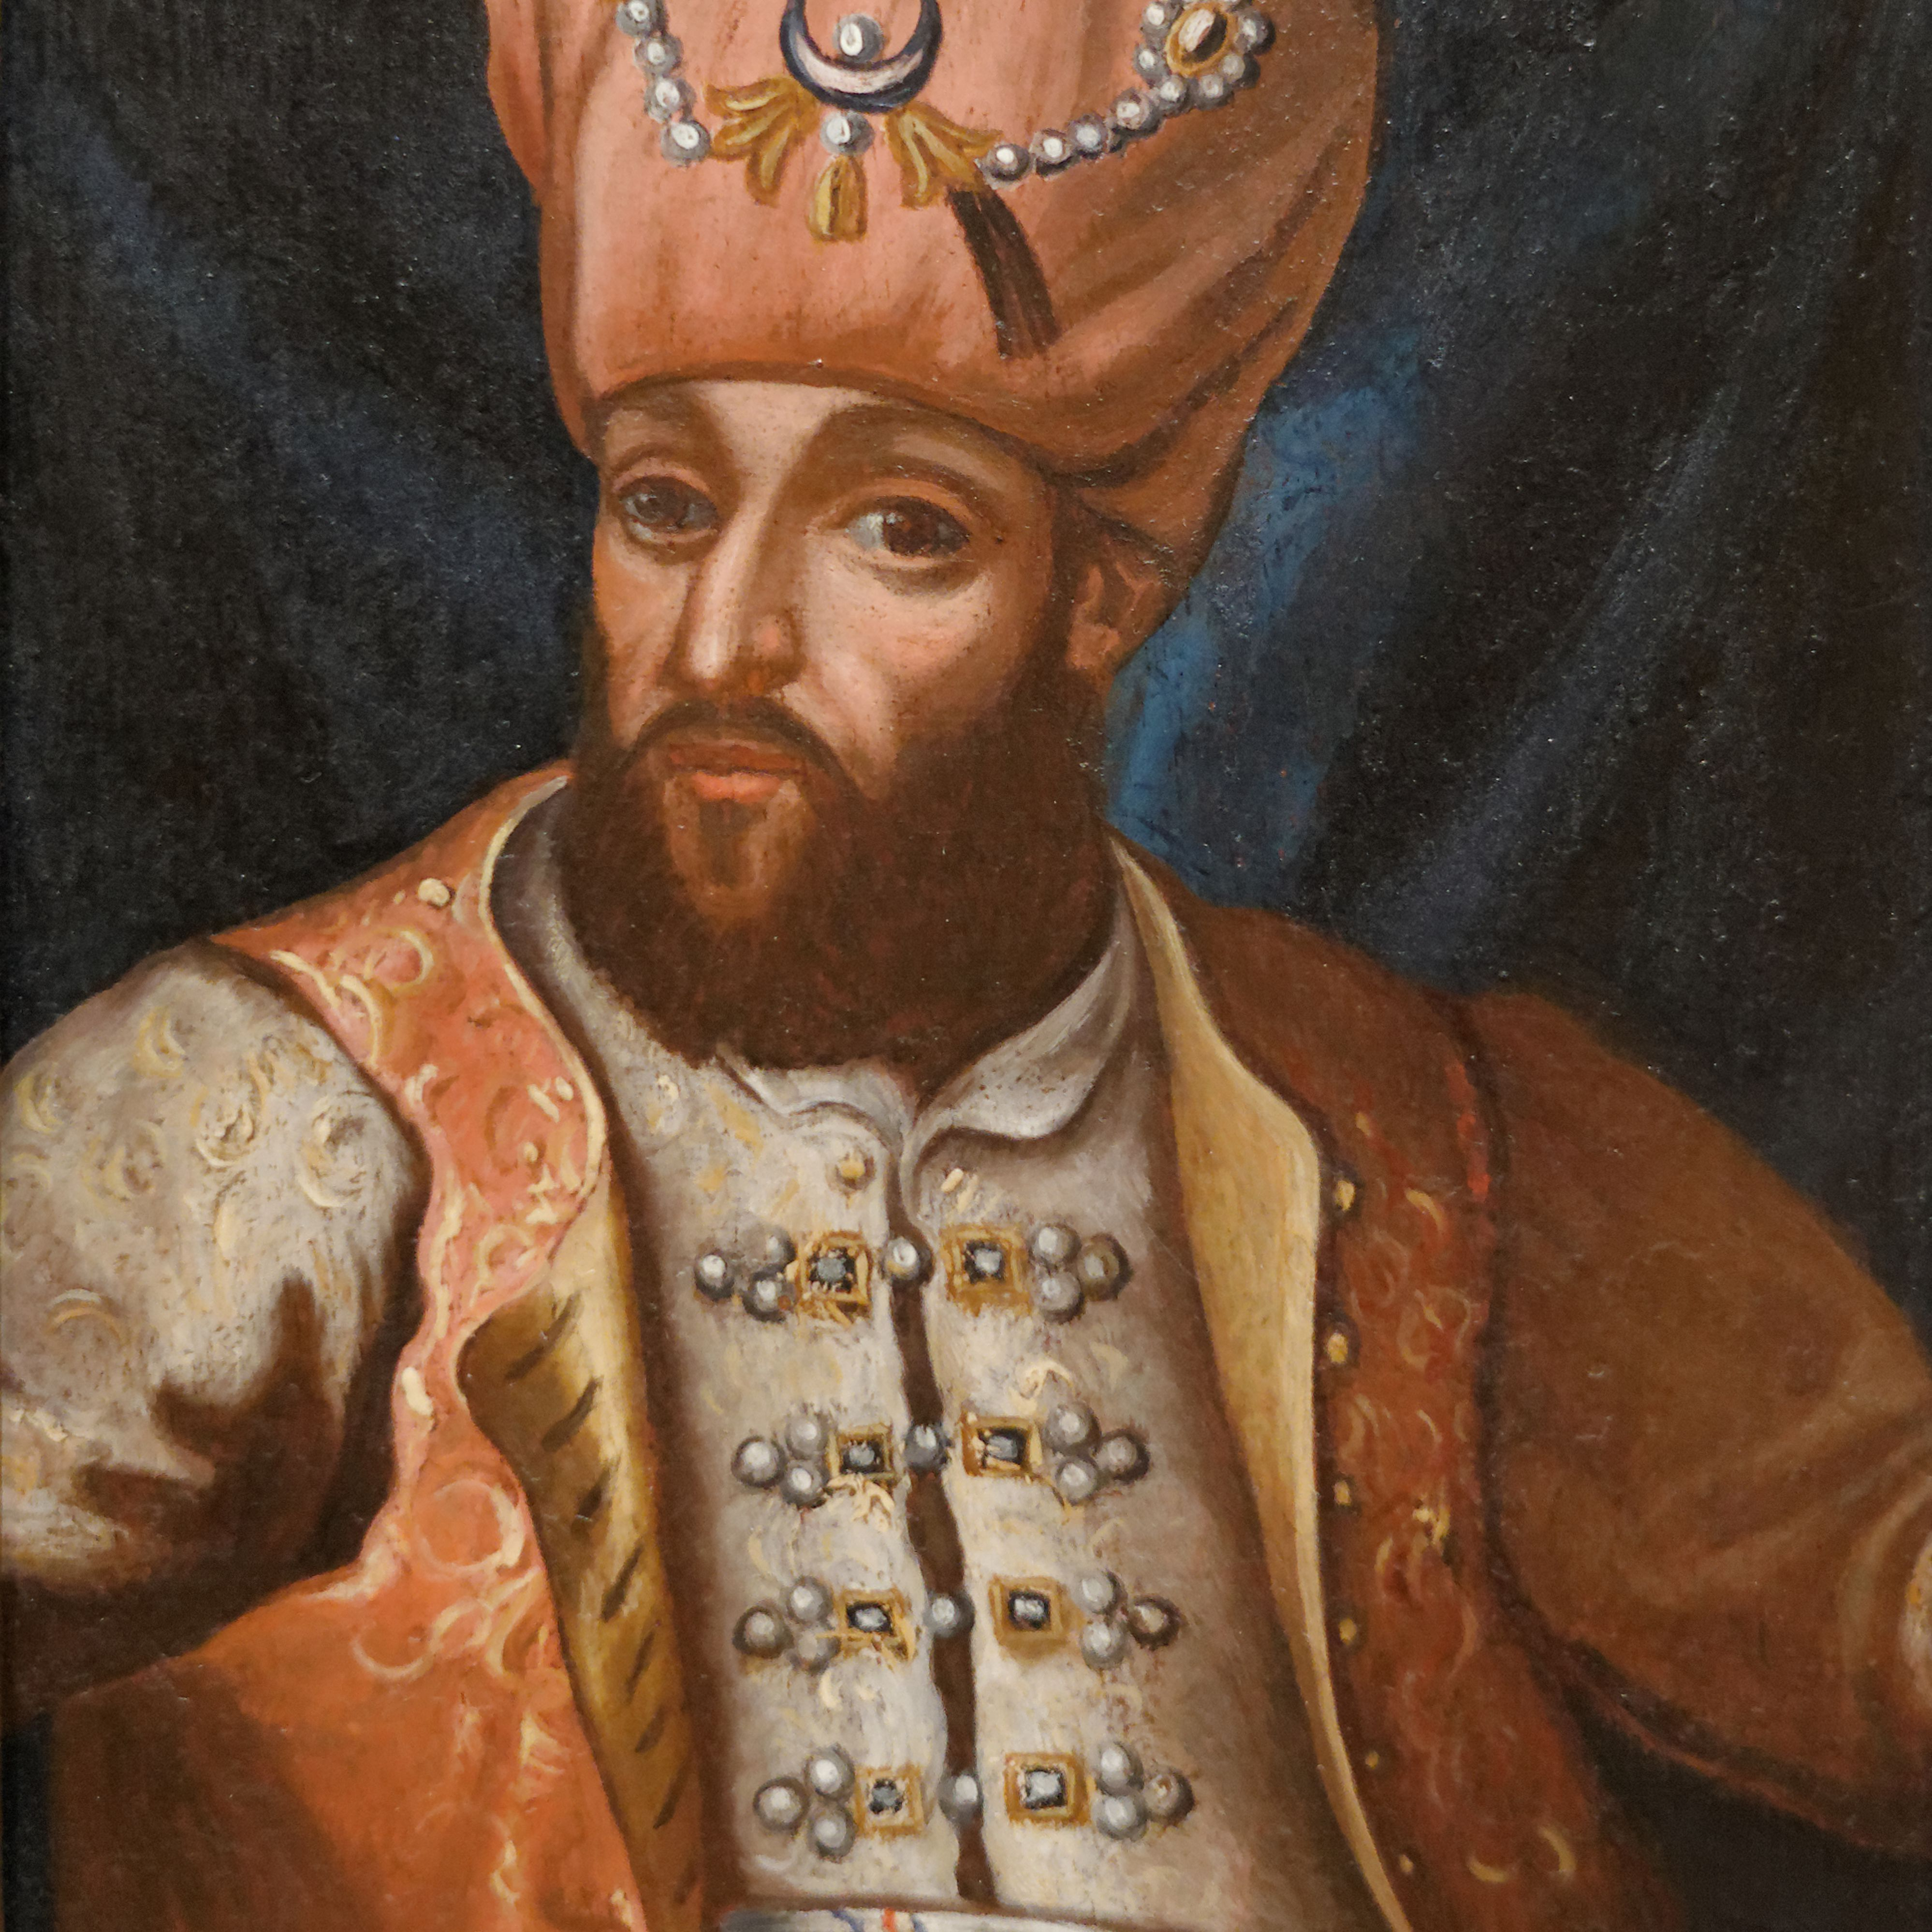 Mehmed IV (1642-1693), Sultan of the Ottoman Empire, 17th century. Found in the collection of the Vienna Museum.